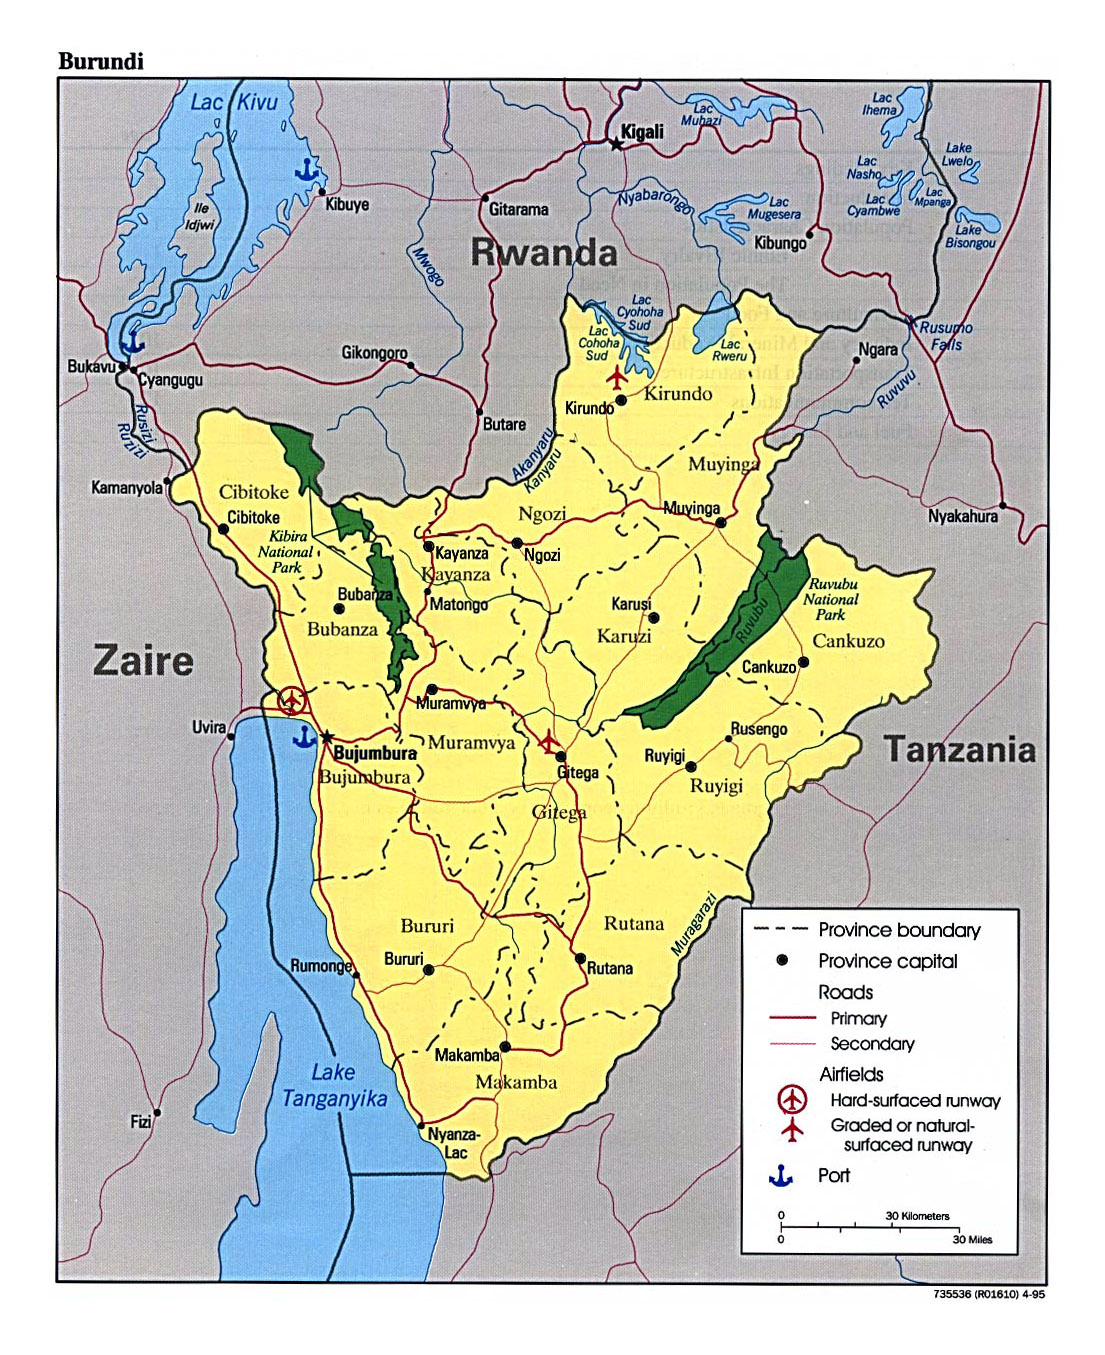 Detailed map of burundi with administrative divisions roads major detailed map of burundi with administrative divisions roads major cities airports and ports gumiabroncs Gallery